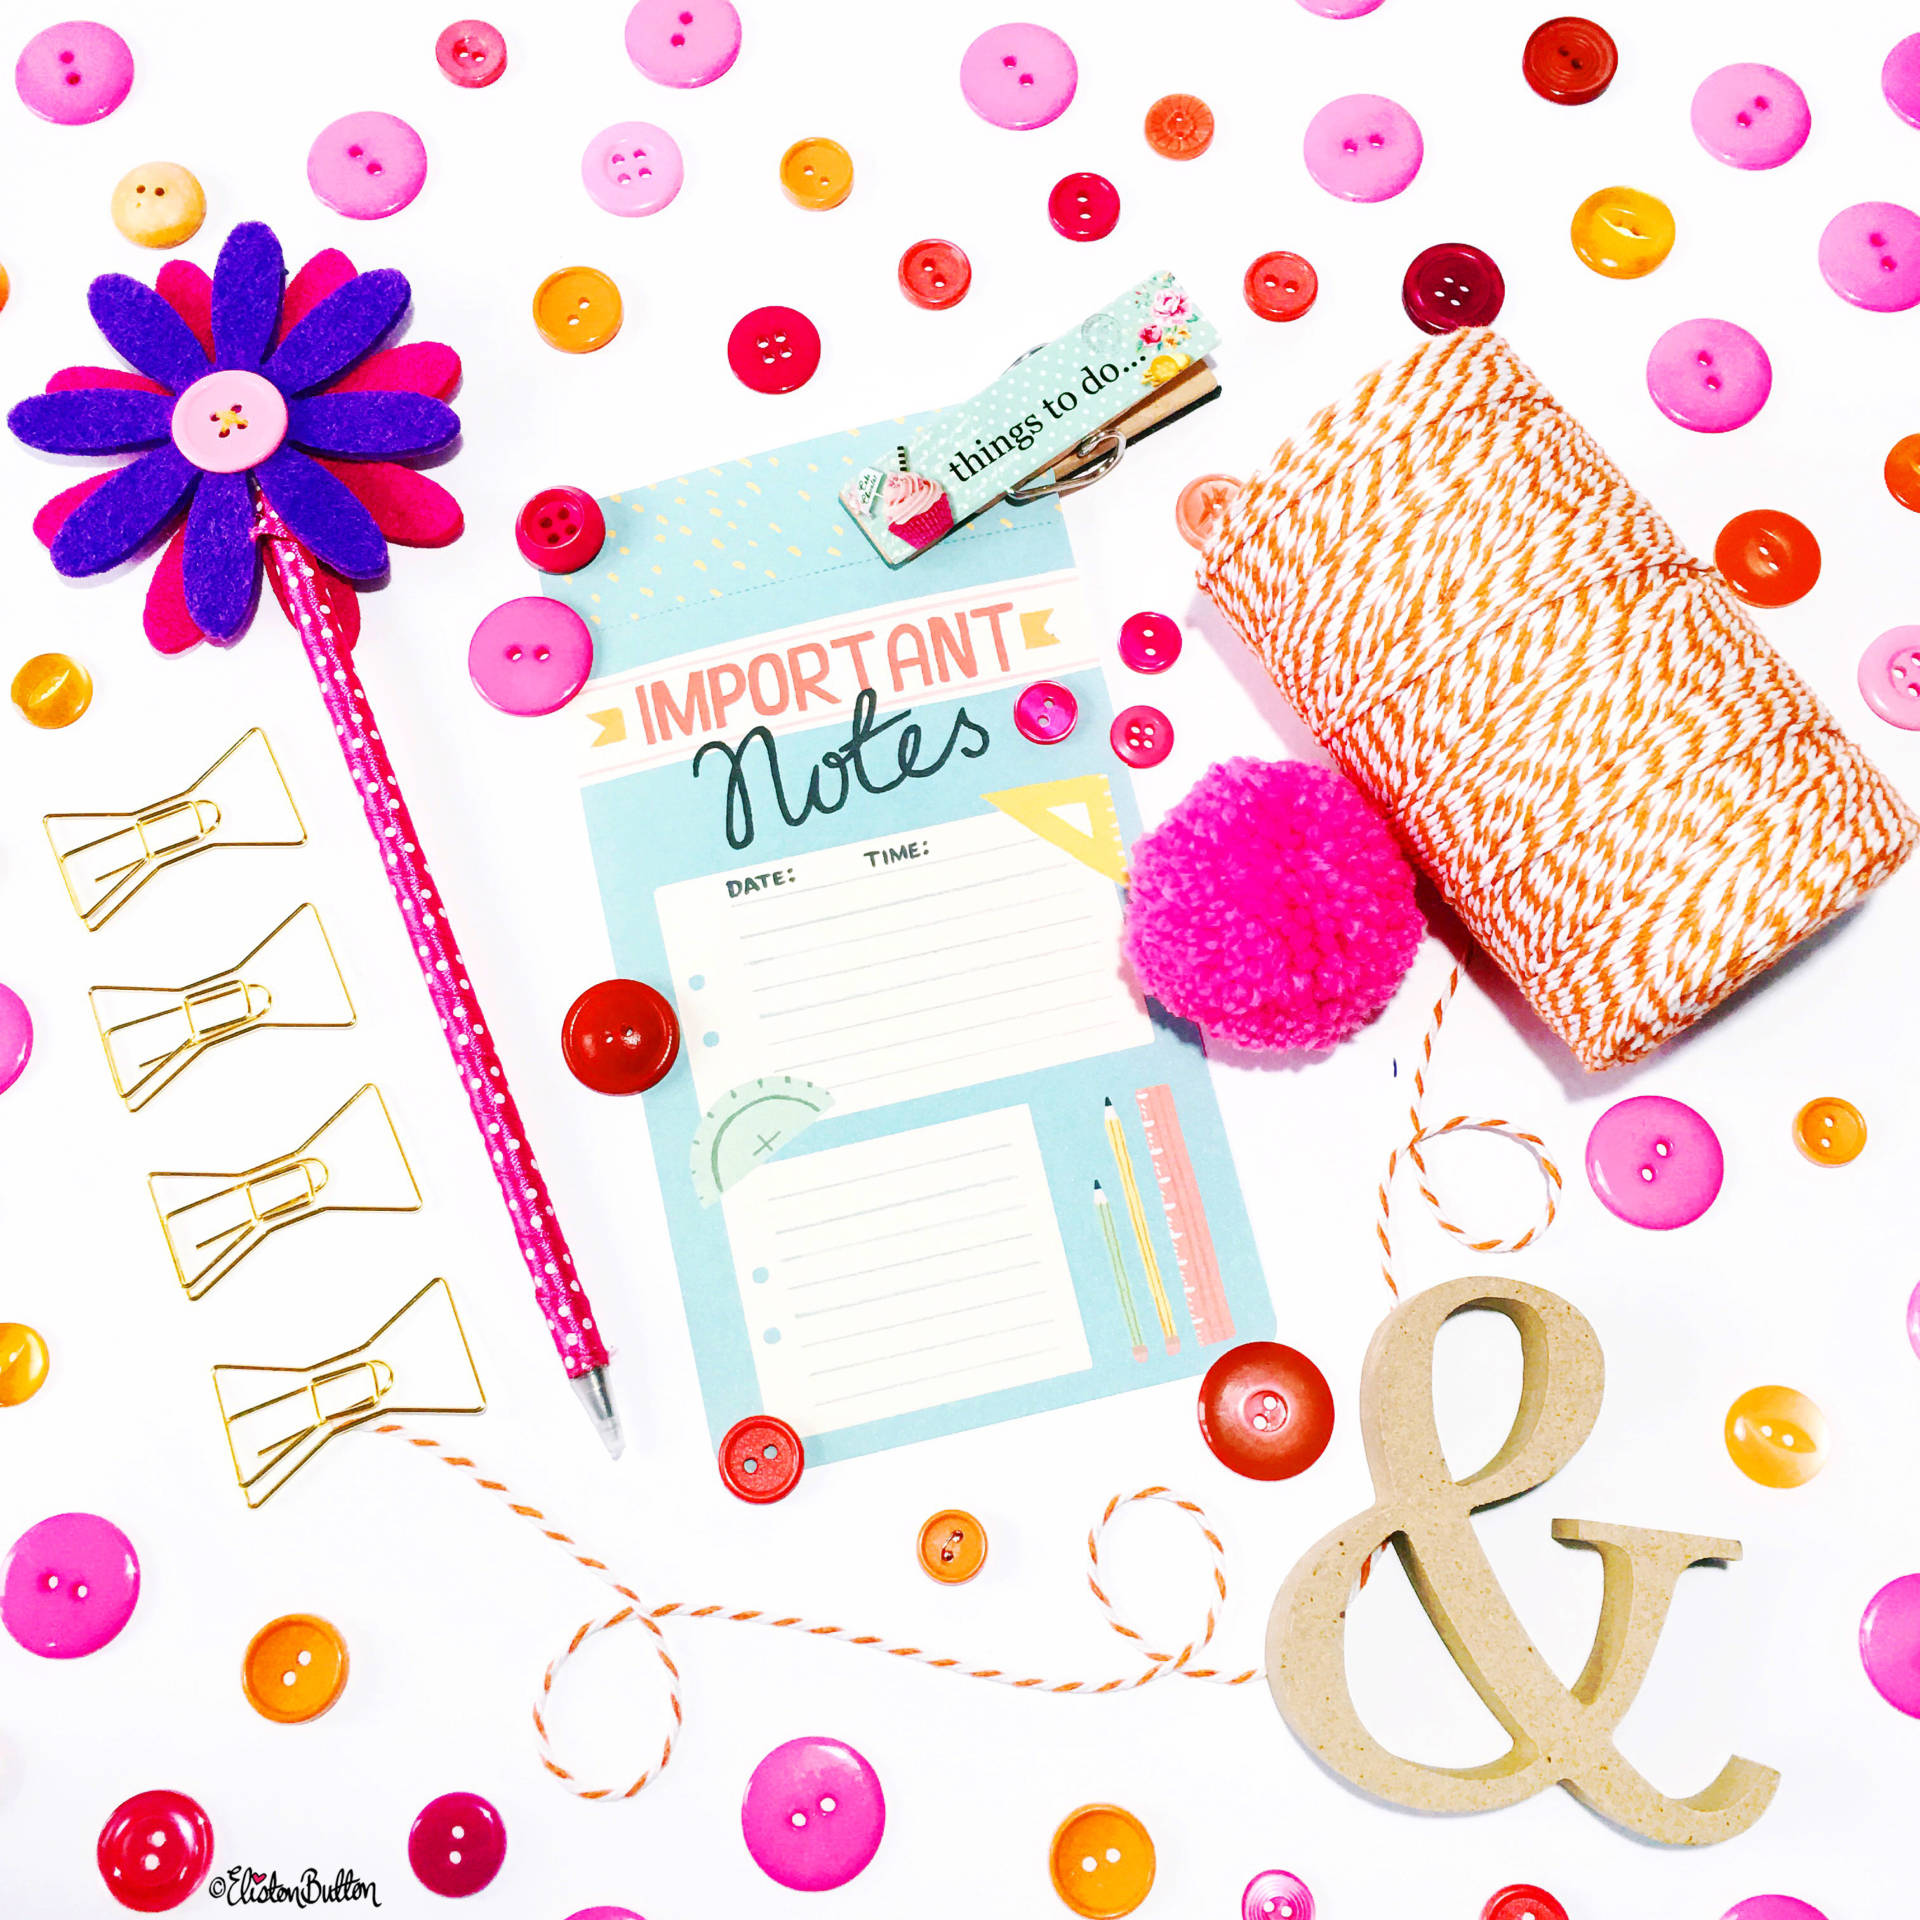 Day 24 - Blank - Stationery Flatlay - Photo-a-Day – October 2016 at www.elistonbutton.com - Eliston Button - That Crafty Kid – Art, Design, Craft & Adventure.